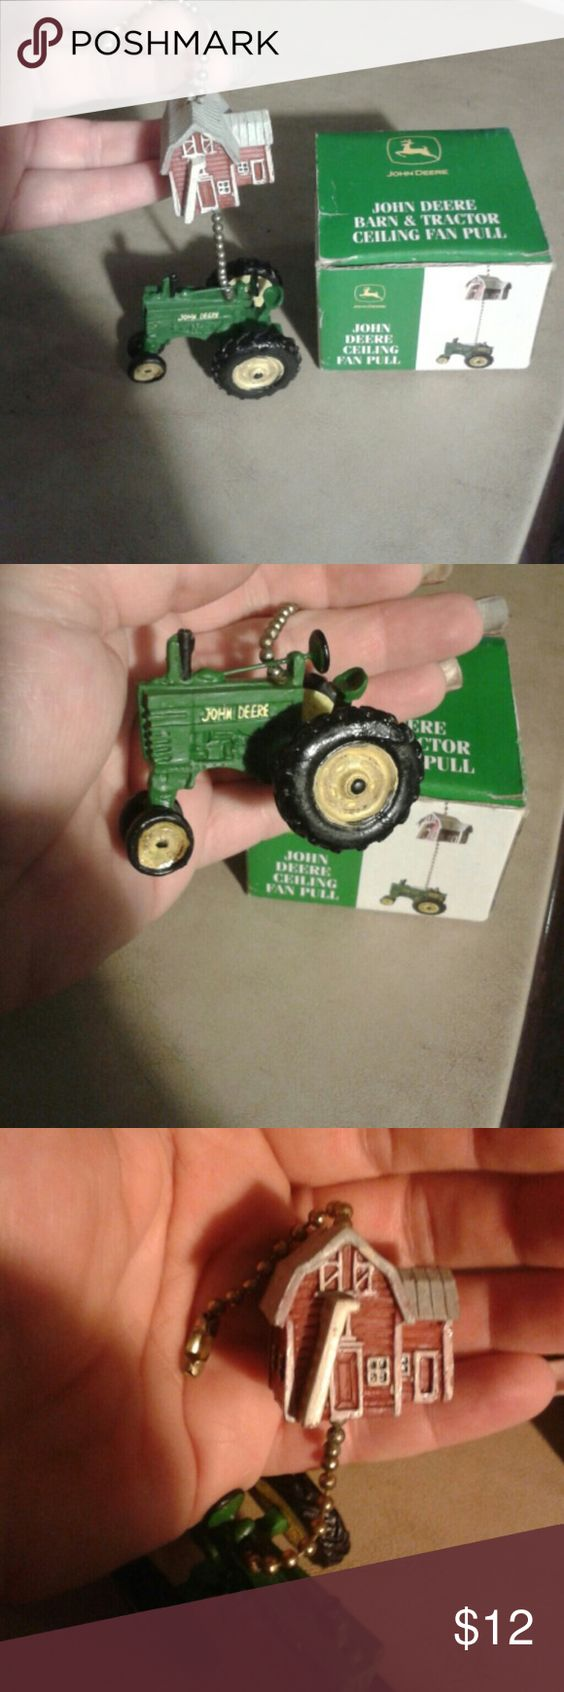 John Deere Barn&Tractor Ceiling Fan Pull NEW in the box, never used, ceiling fan pull, John Deere, tractor is green & yellow, barn is red & white, price is firm. John Deere Other